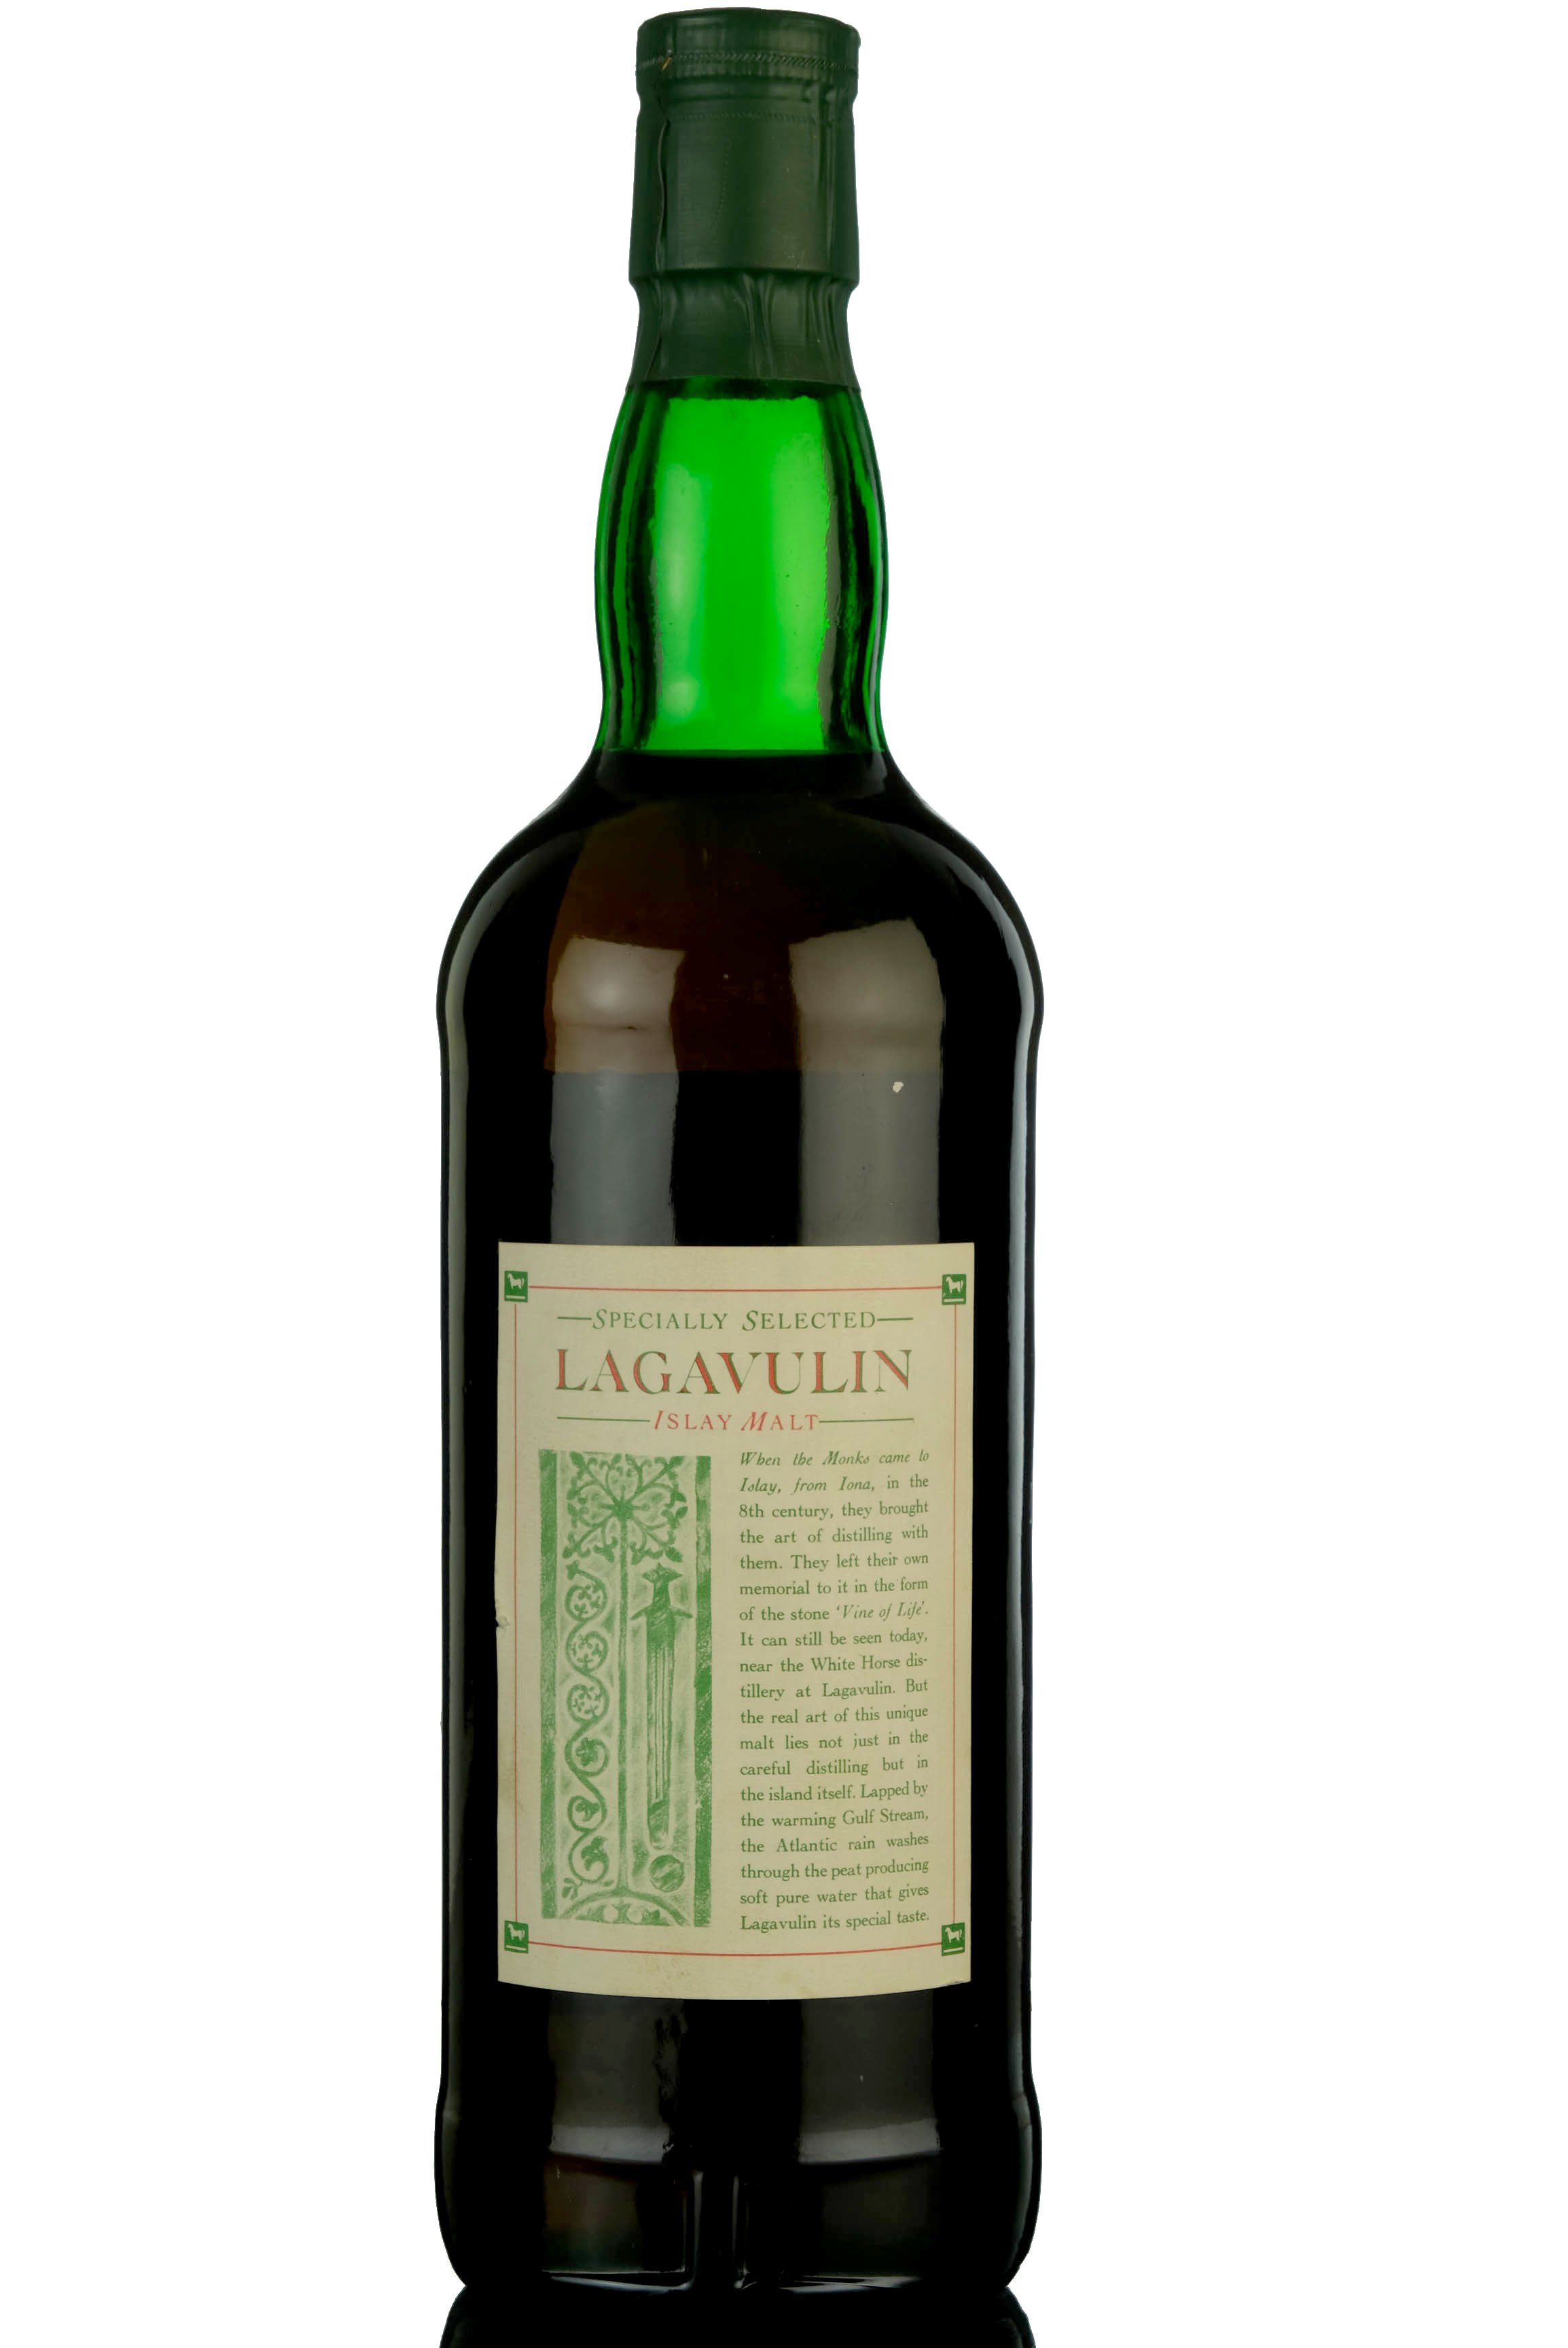 lagavulin 12 year old - white horse - 1980s